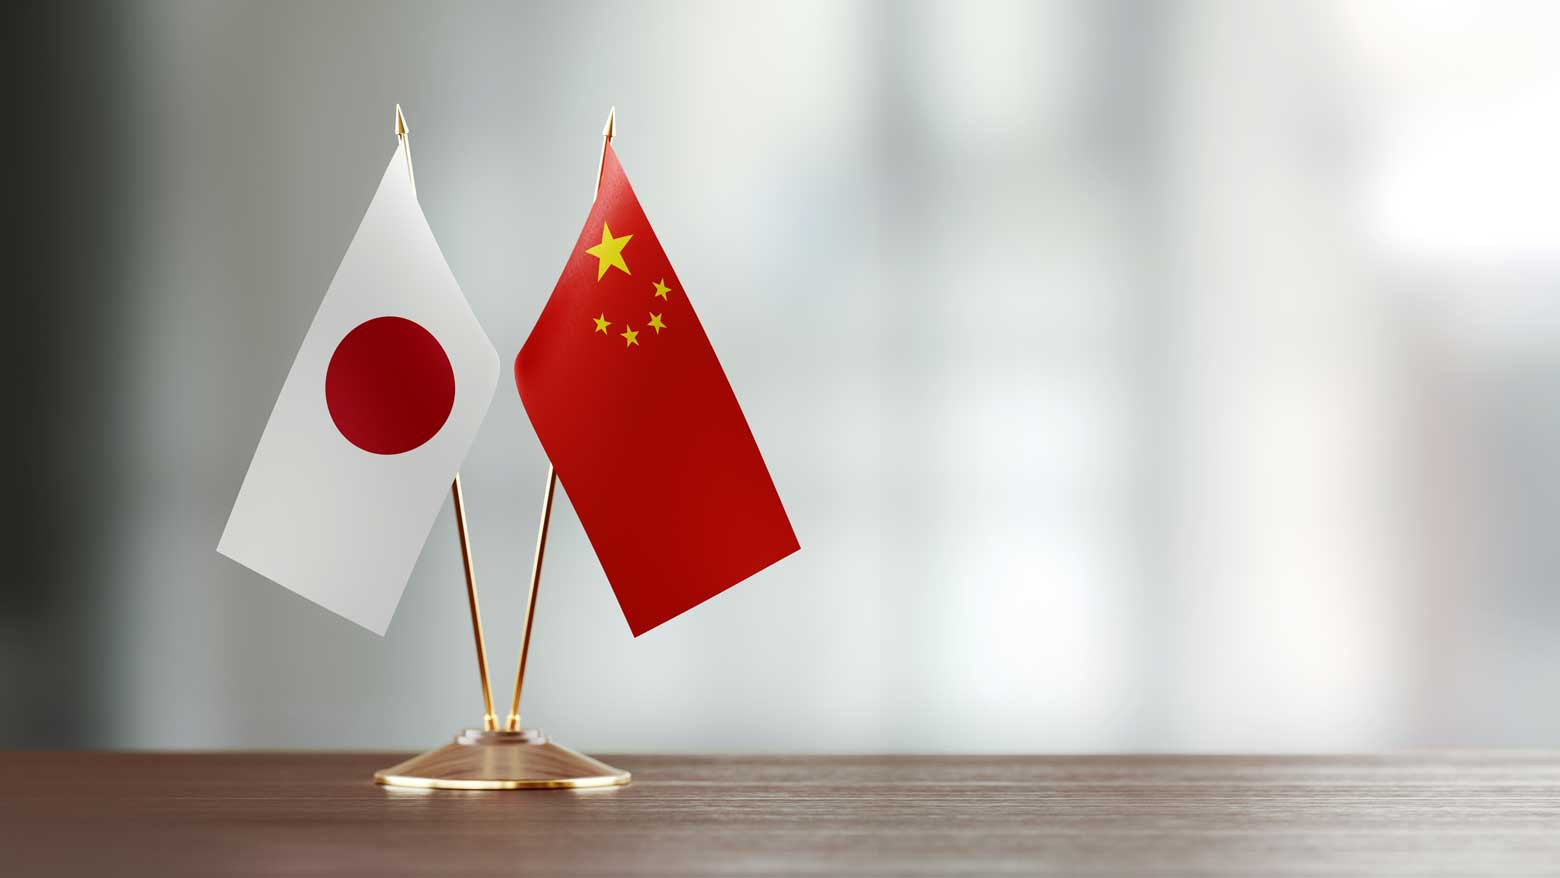 Japan protests China's island incursions during foreign minister visit